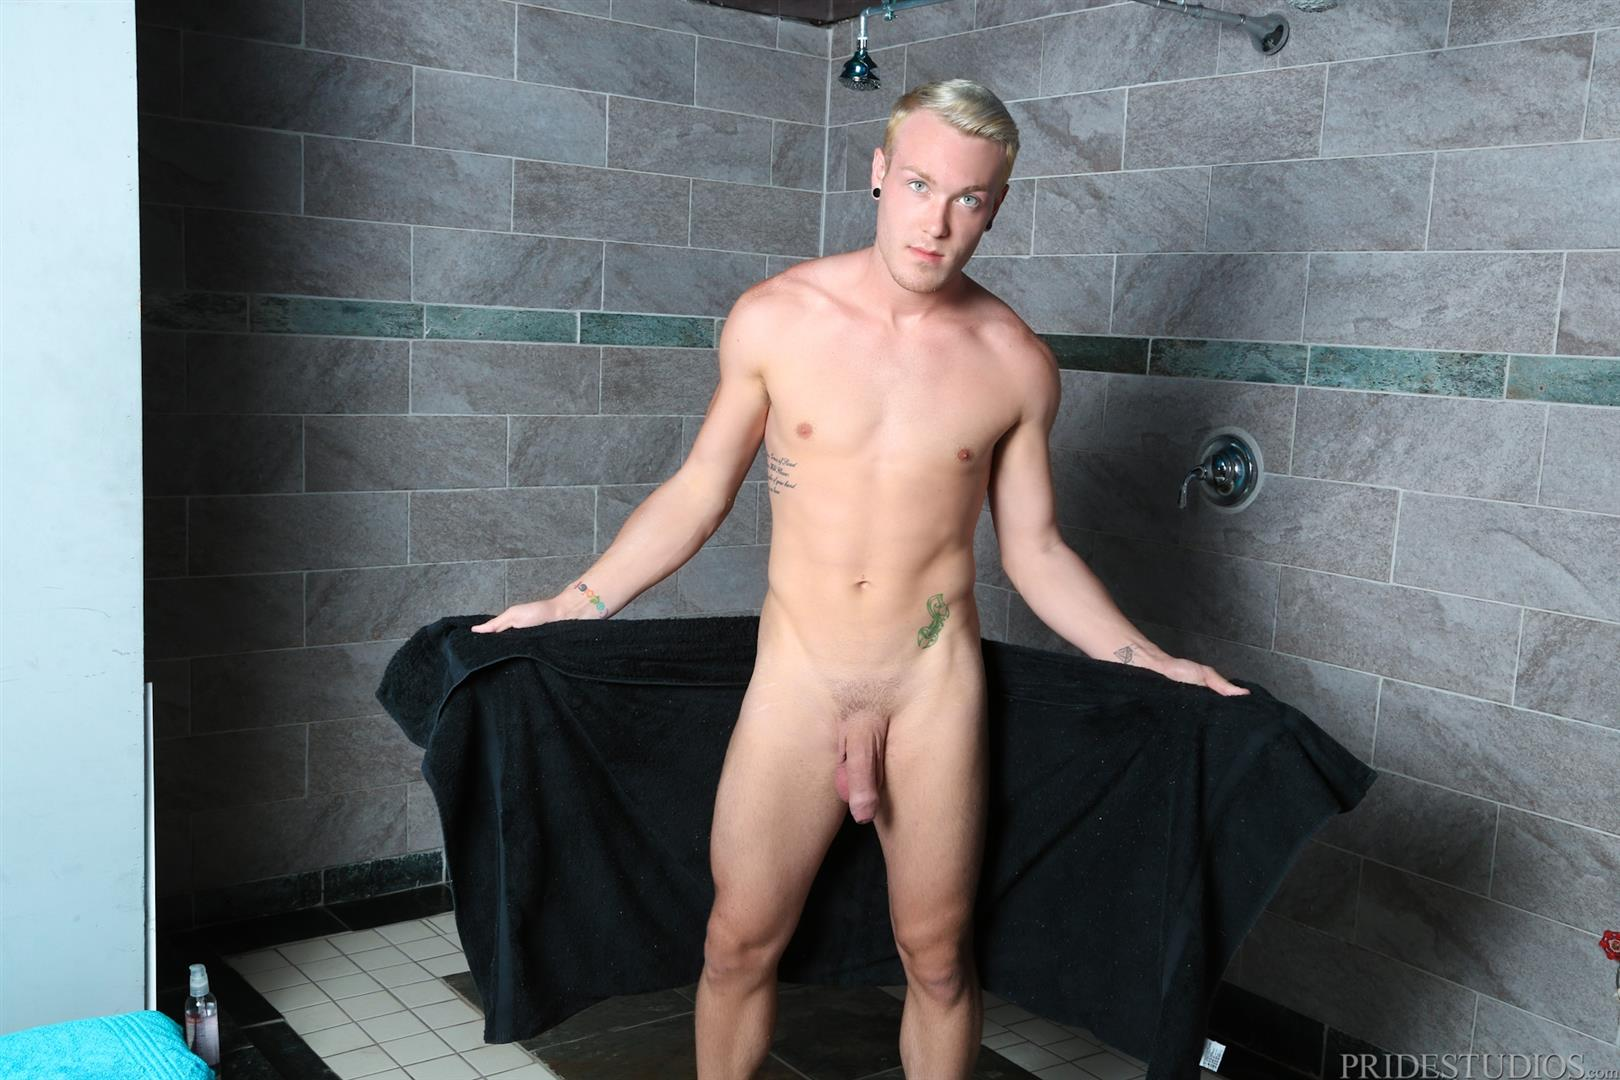 Extra-Big-Dicks-Kaydin-Bennett-Athletic-Guy-In-The-Shower-Jerking-Off-Big-Uncut-Cock-Amateur-Gay-Porn-06 Athletic Stud Showering And Stroking His Big Uncut Cock